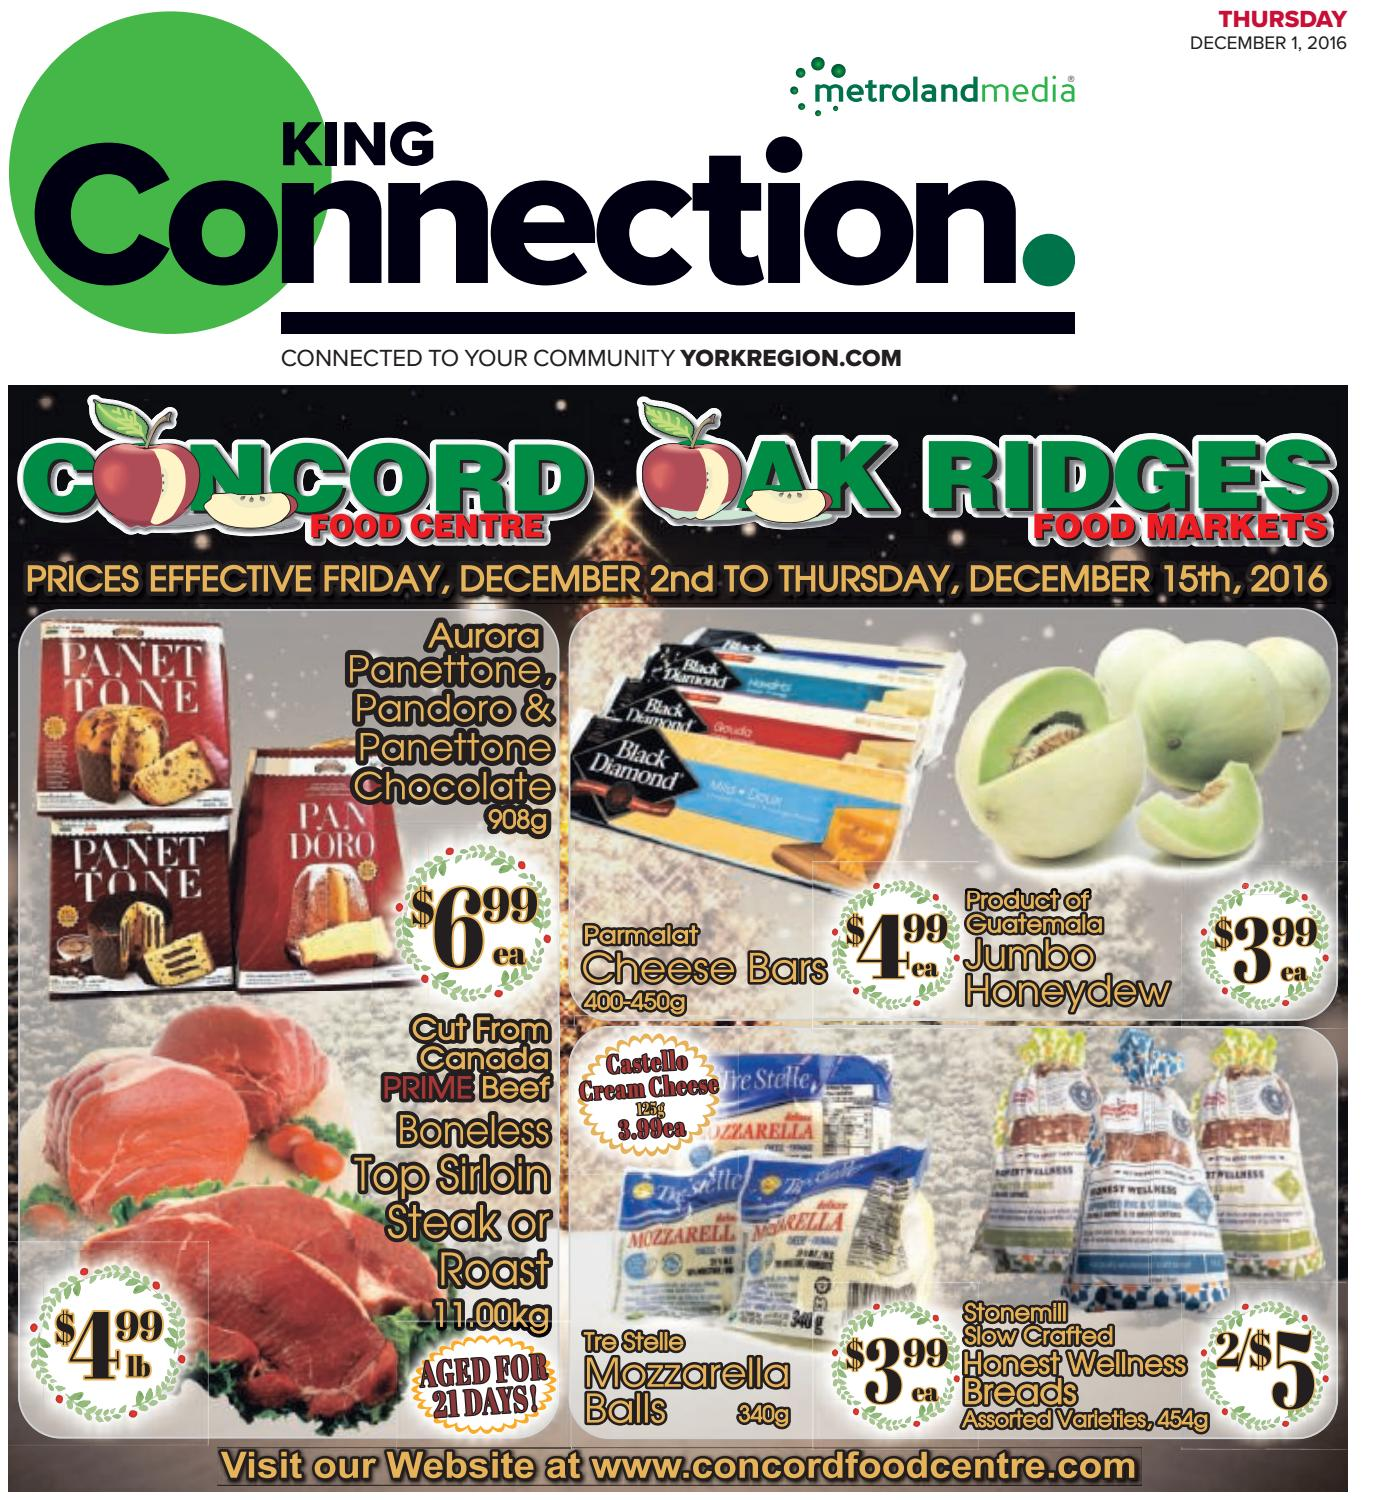 King Connection, December 1, 2016 By King Connection   Issuu